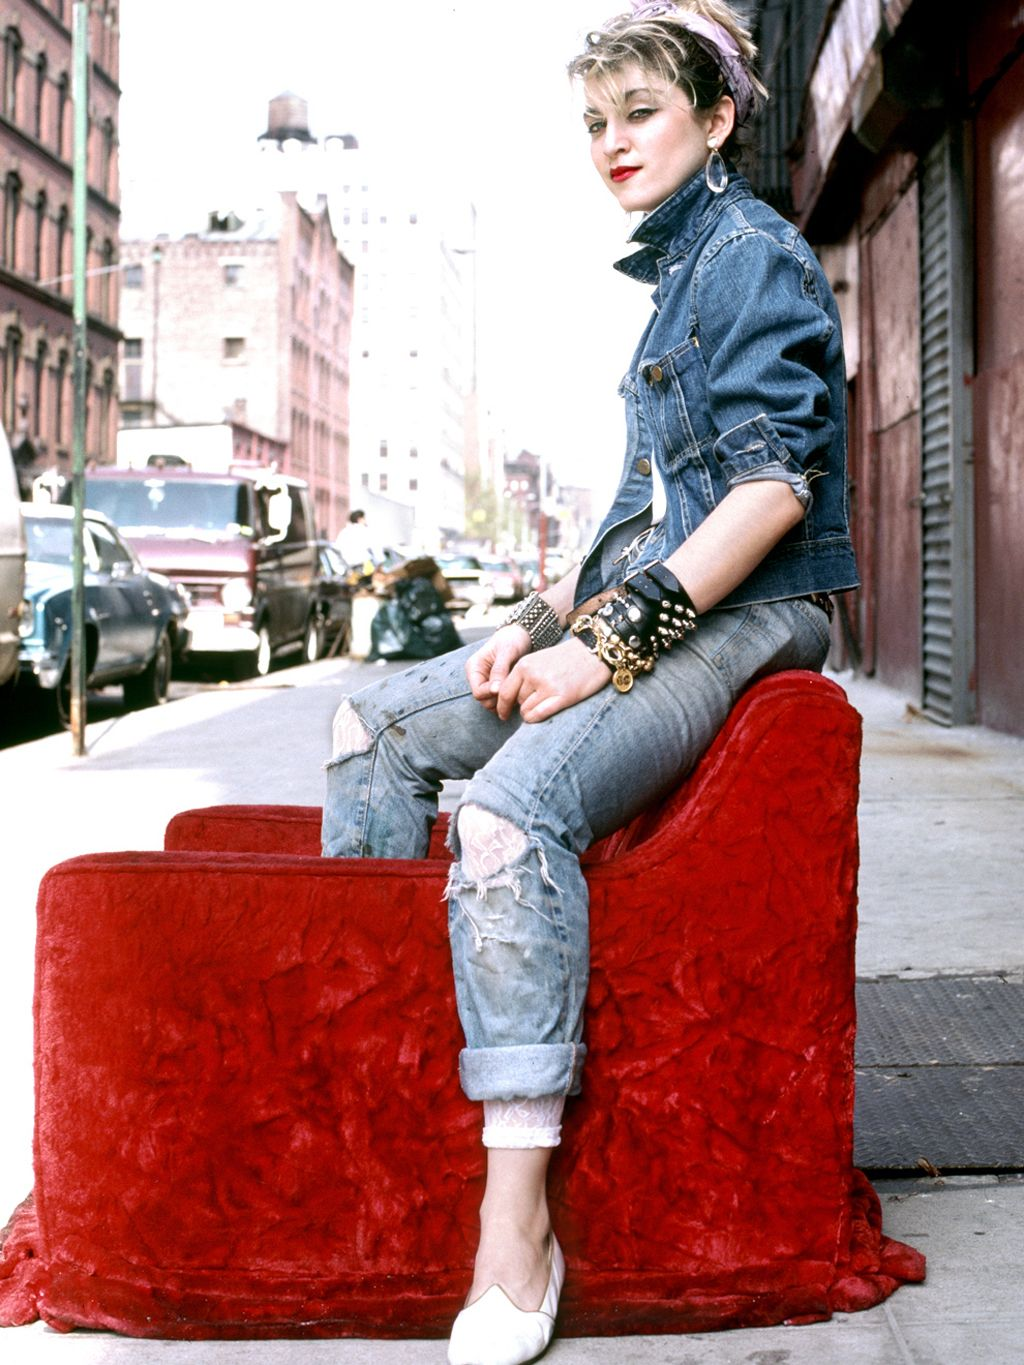 Madonna Working Double Denim Madonna Outfits 80s Fashion Material Girls